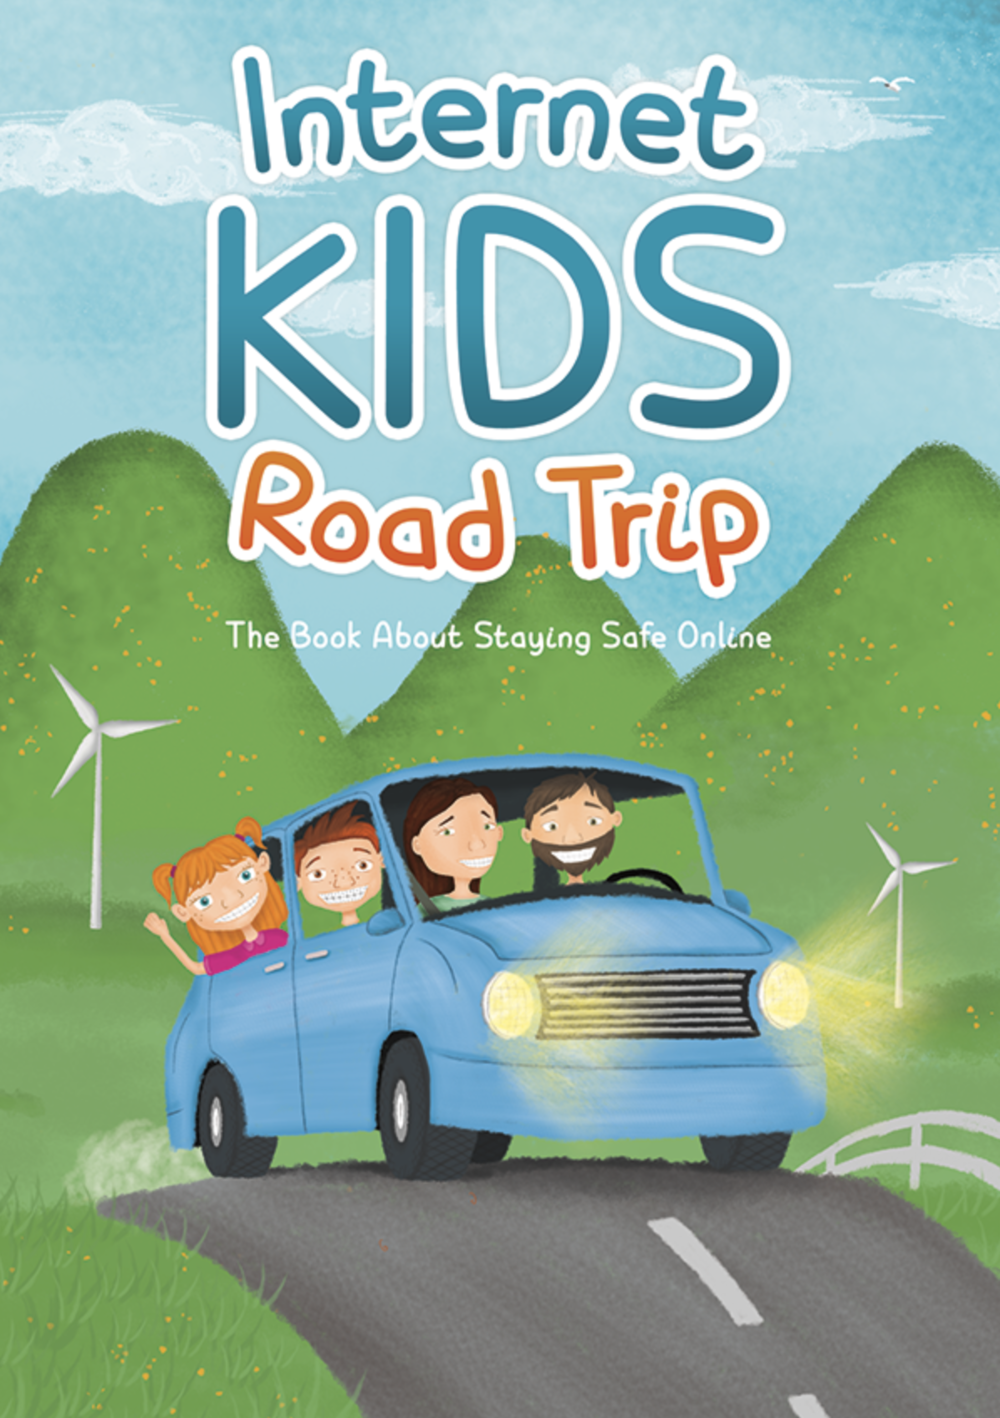 Internet Kids Road Trip